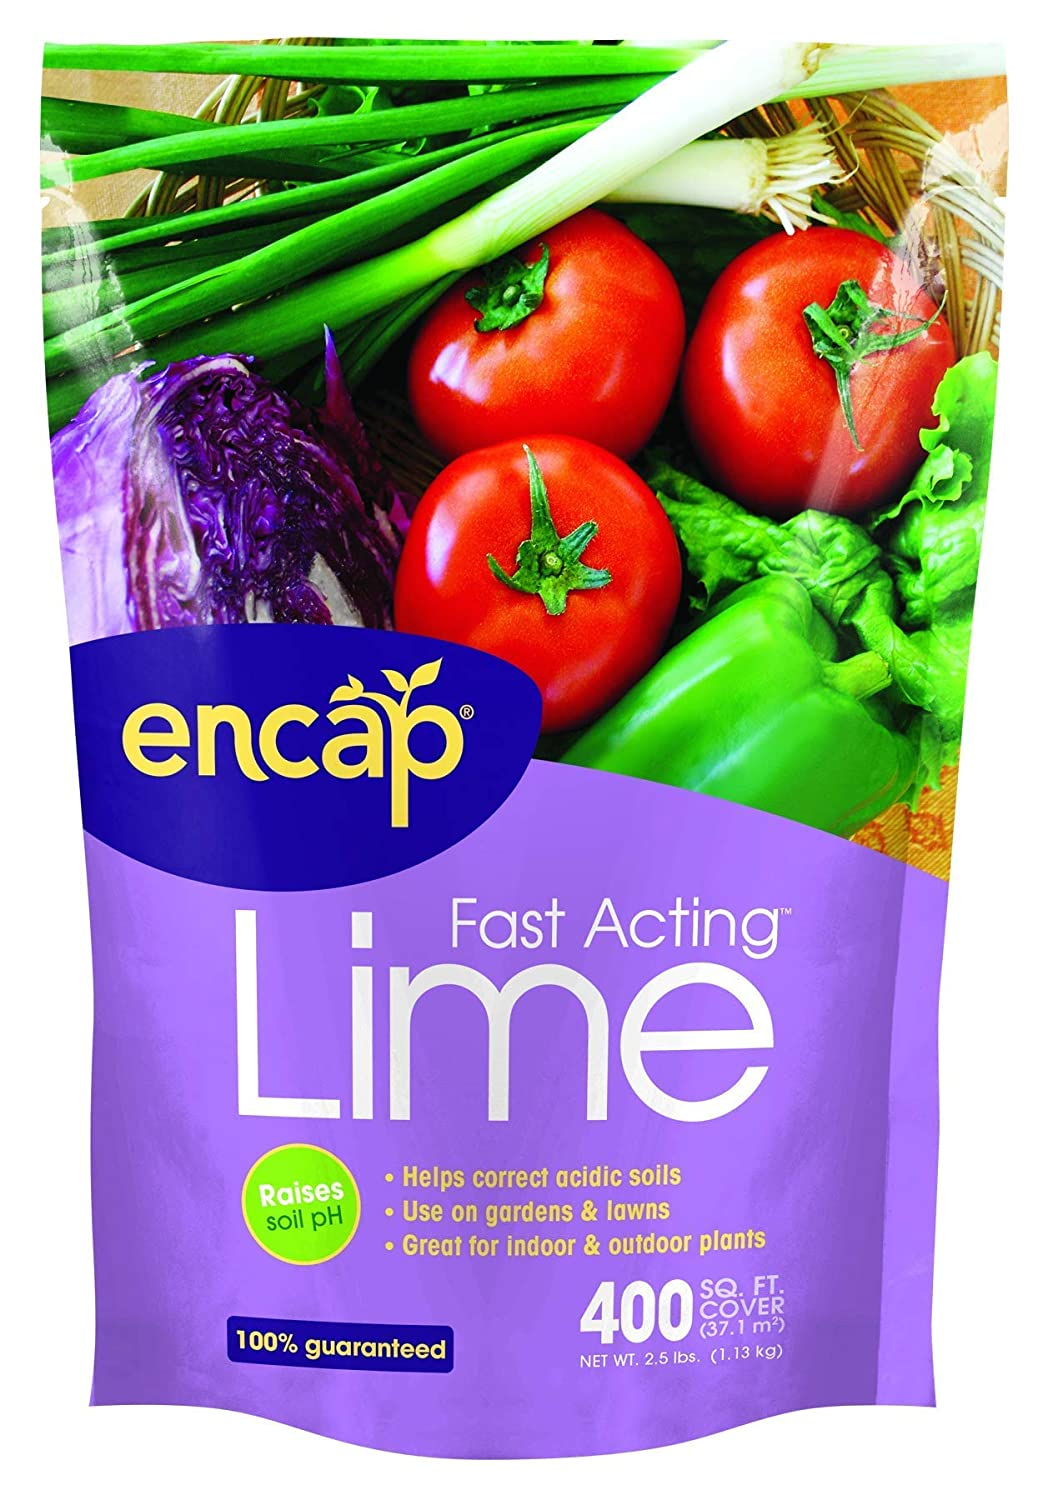 Encap 10612-6 Fast Acting Lime Pouch, 2.5 Pounds, 400-Square Feet